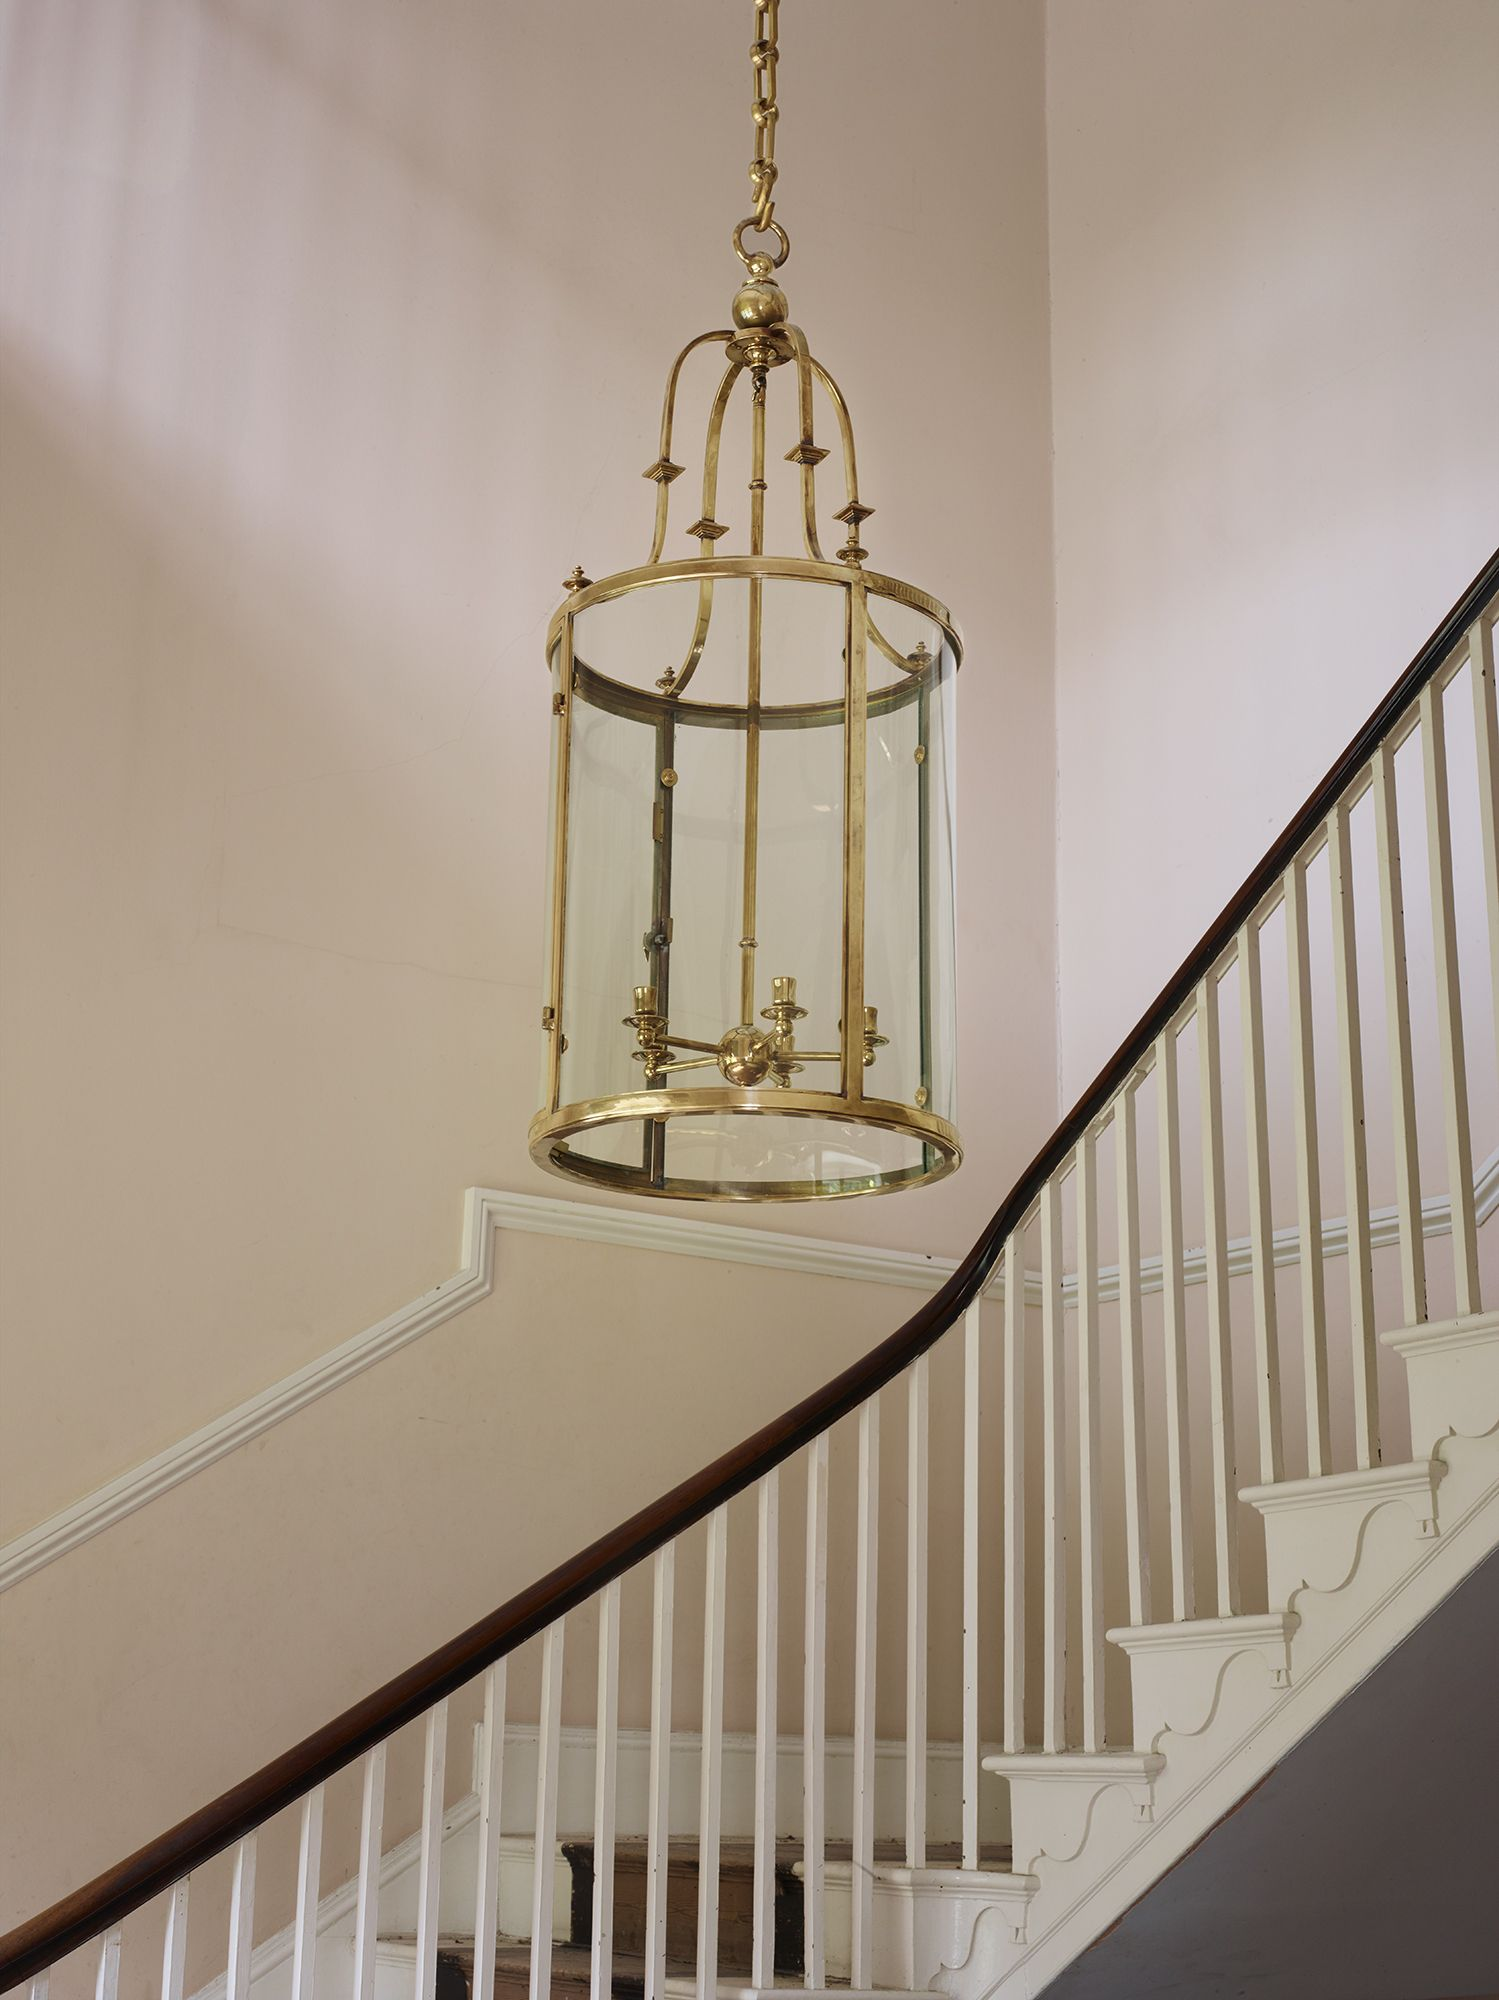 The Attingham Hanging Lantern Is One Of Our Largest Lanterns In